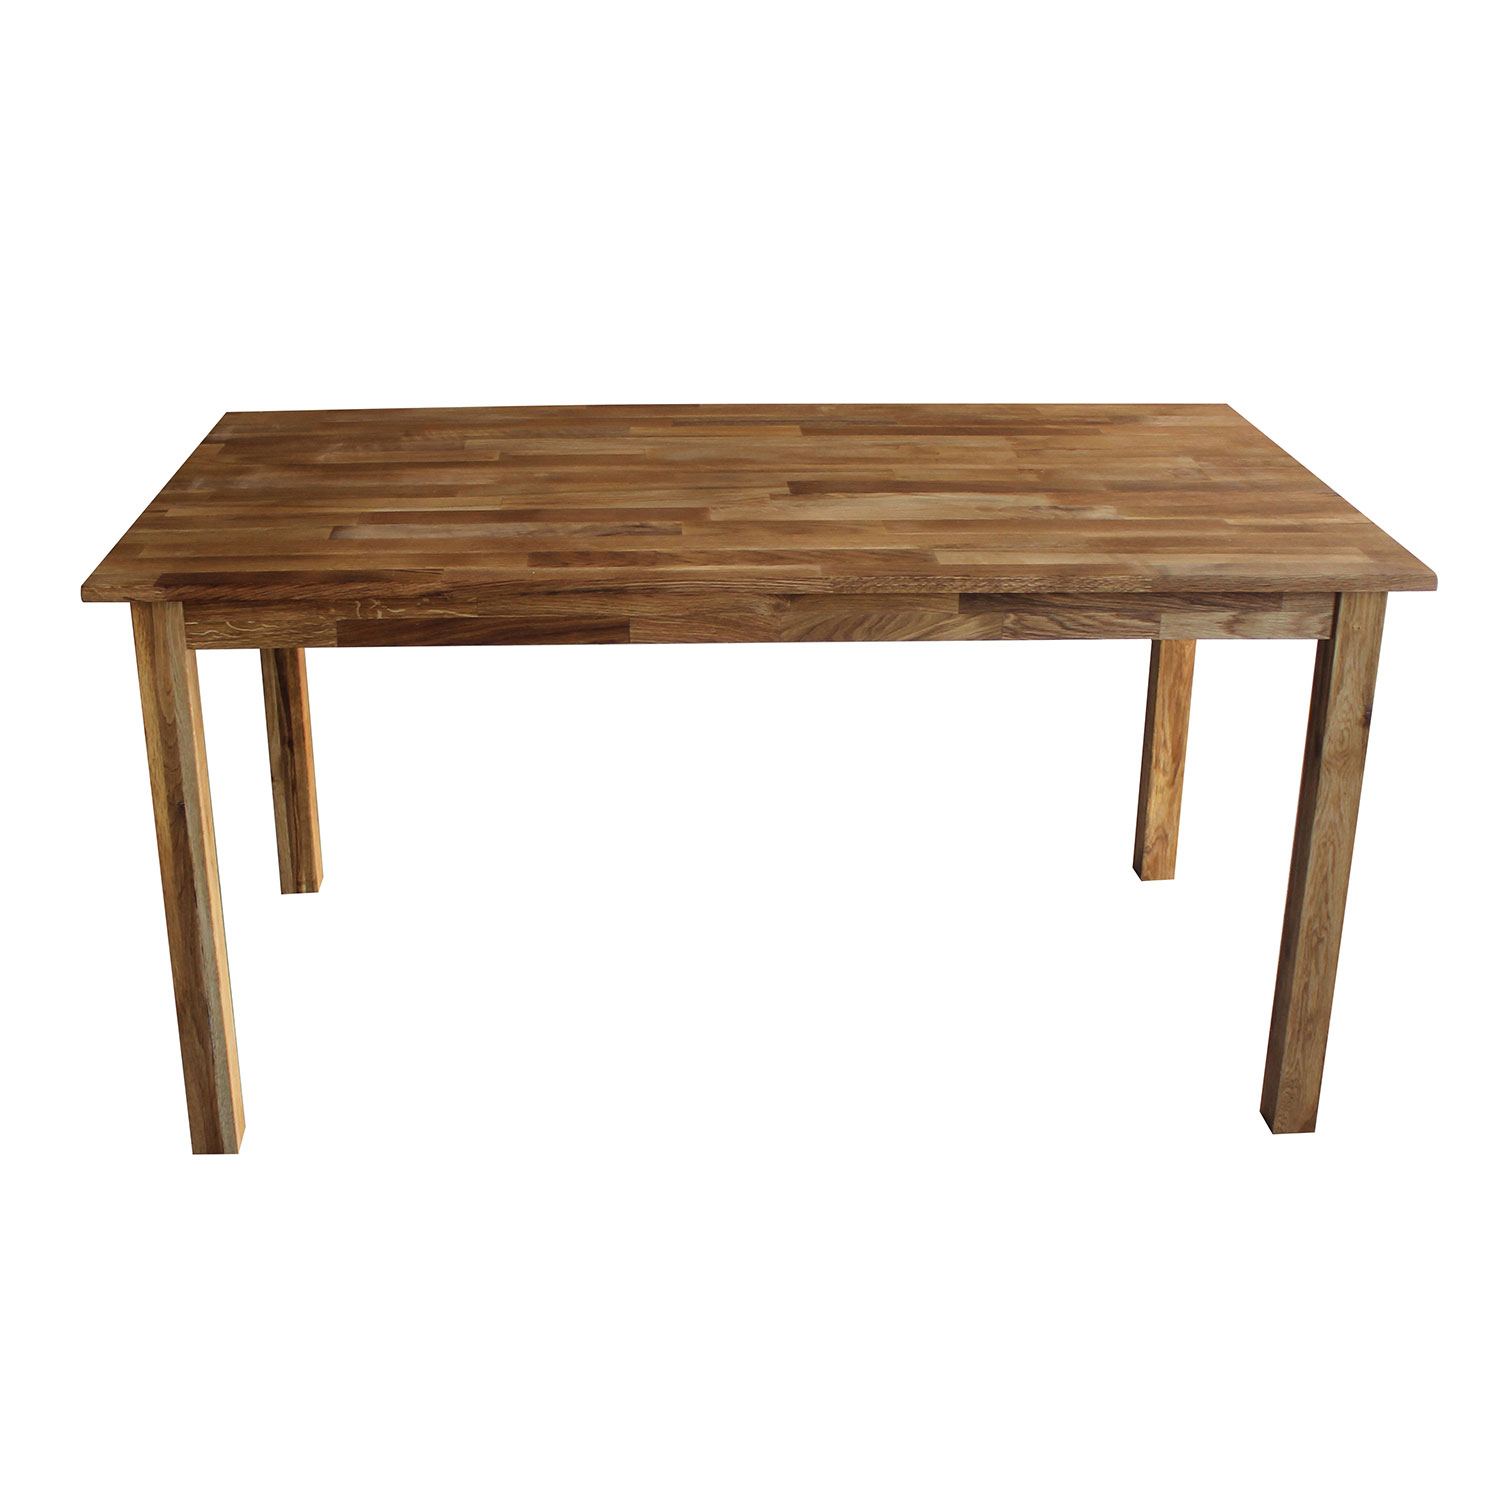 Charles bentley solid oak 6 8 seater wooden dining table for Solid wood dining table